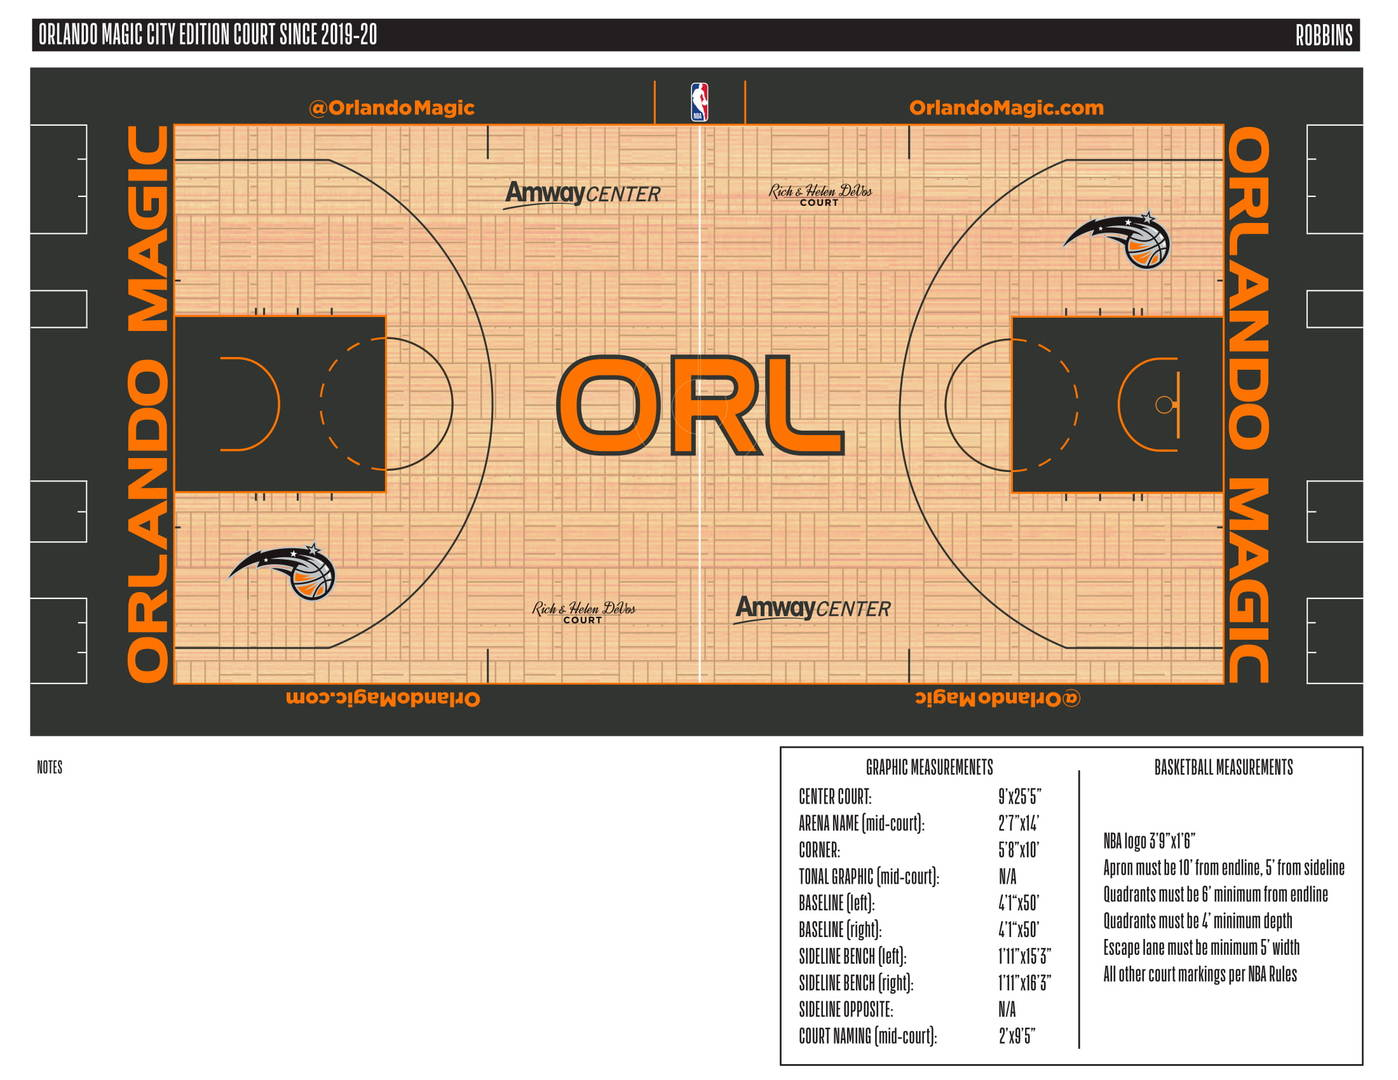 "Orlando Magic ""City Edition"" Court Images Leaked: First Look"